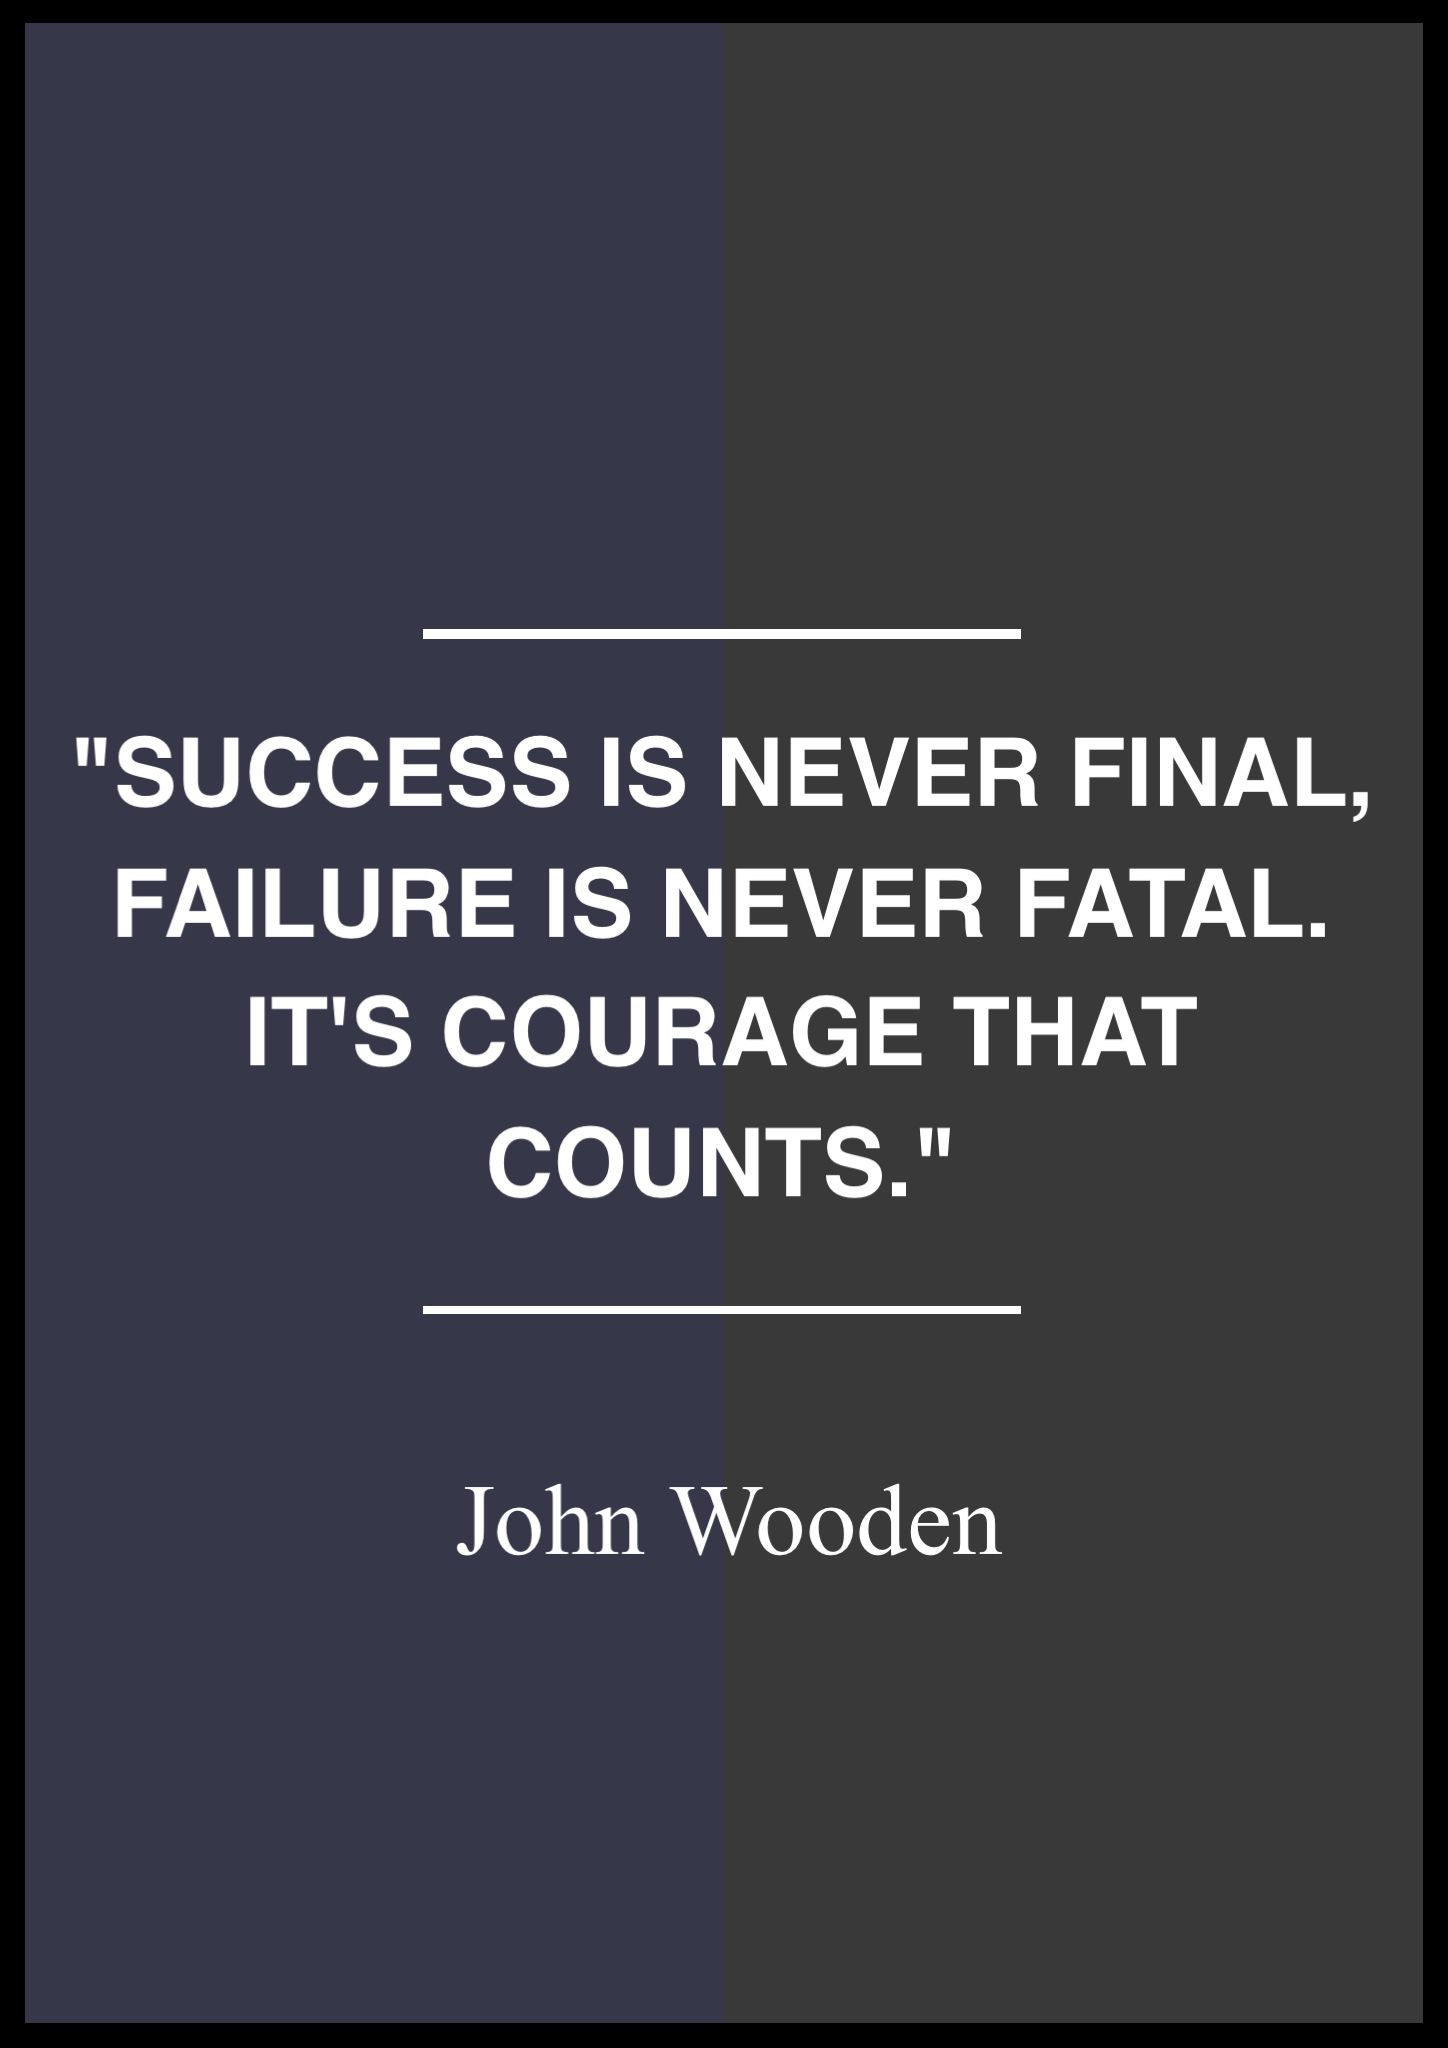 Finals Quotes Amusing Success Is Never Final Failure Is Never Fatalit's Courage That . Inspiration